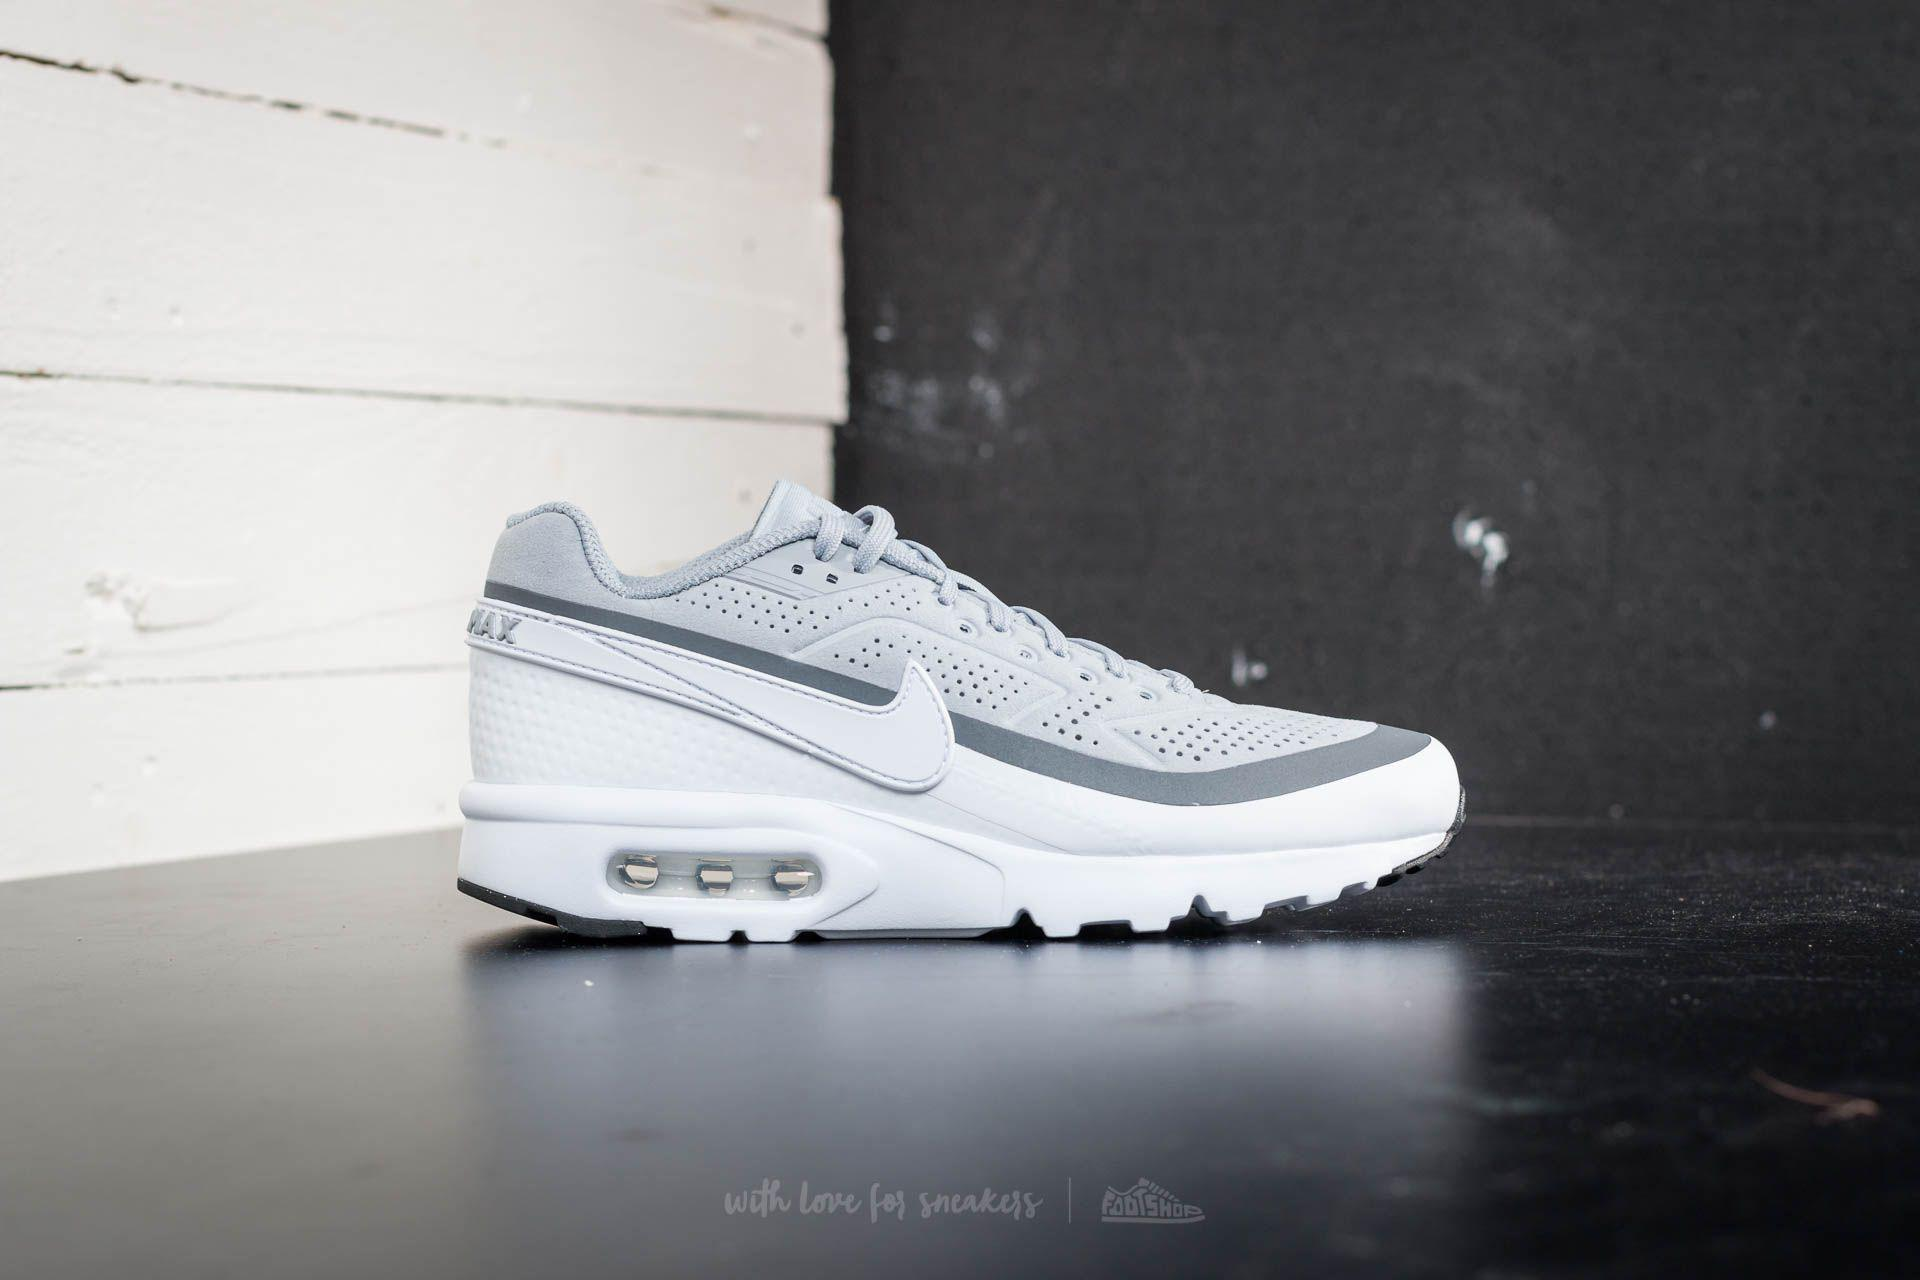 eec3819378 Lyst - Nike Air Max Bw Ultra Moire Wolf Grey White-reflect Silver .